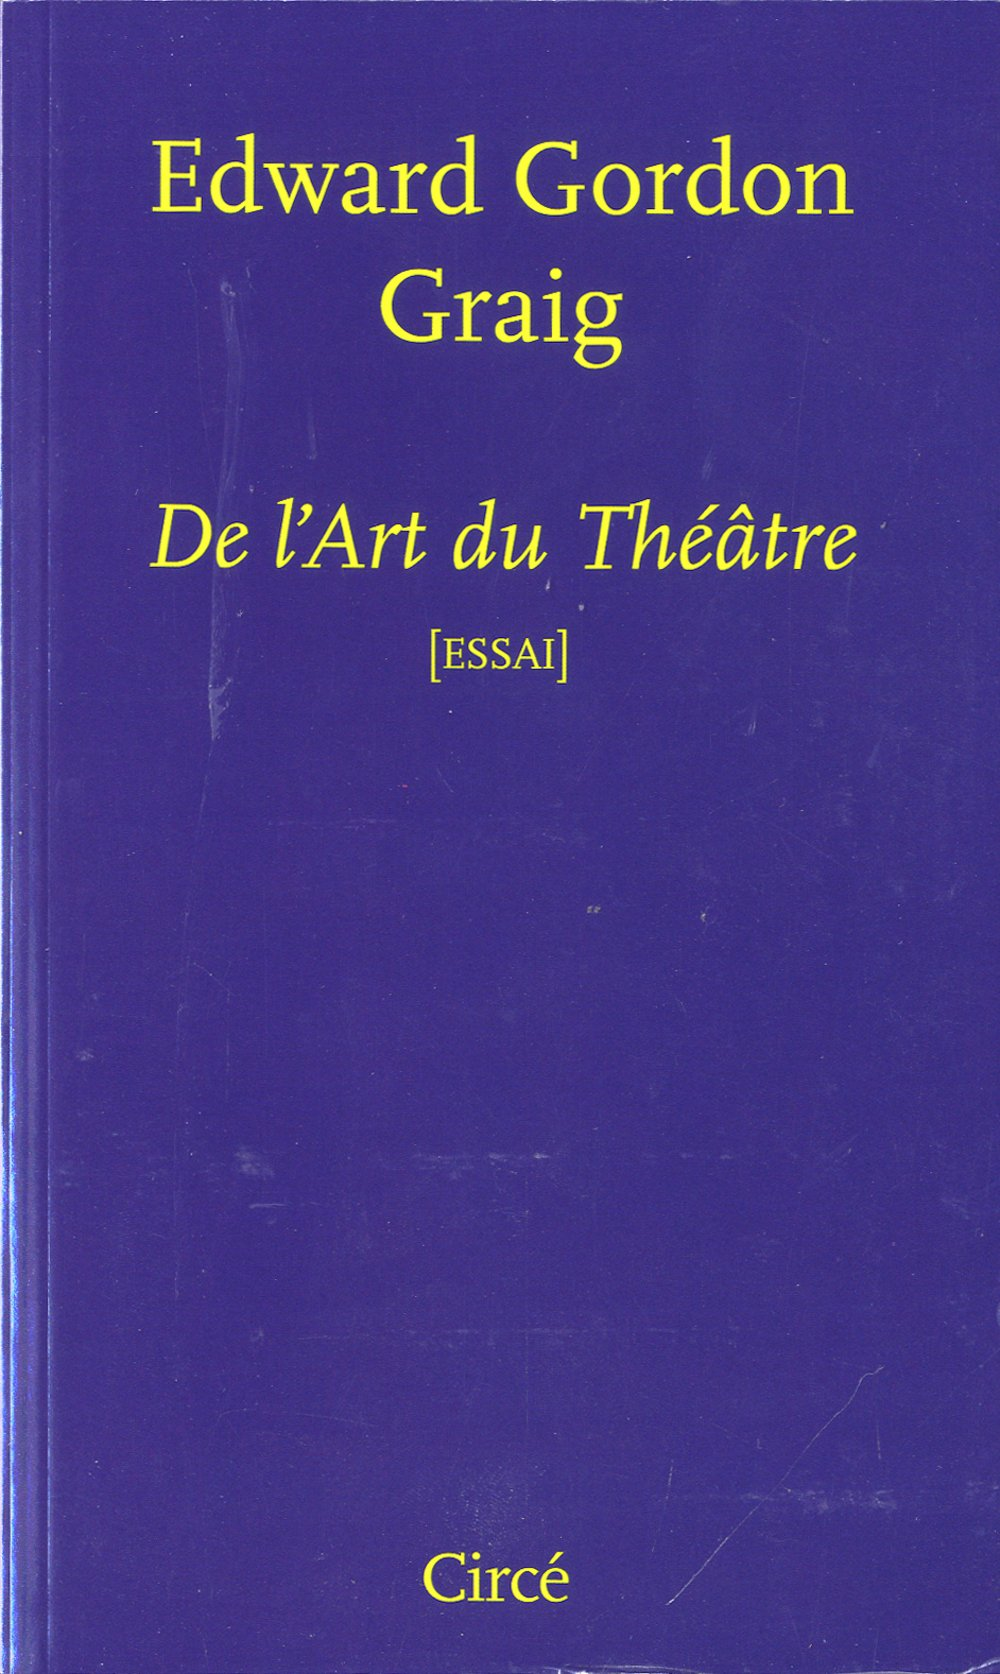 De l'art du théâtre Gordon Graig